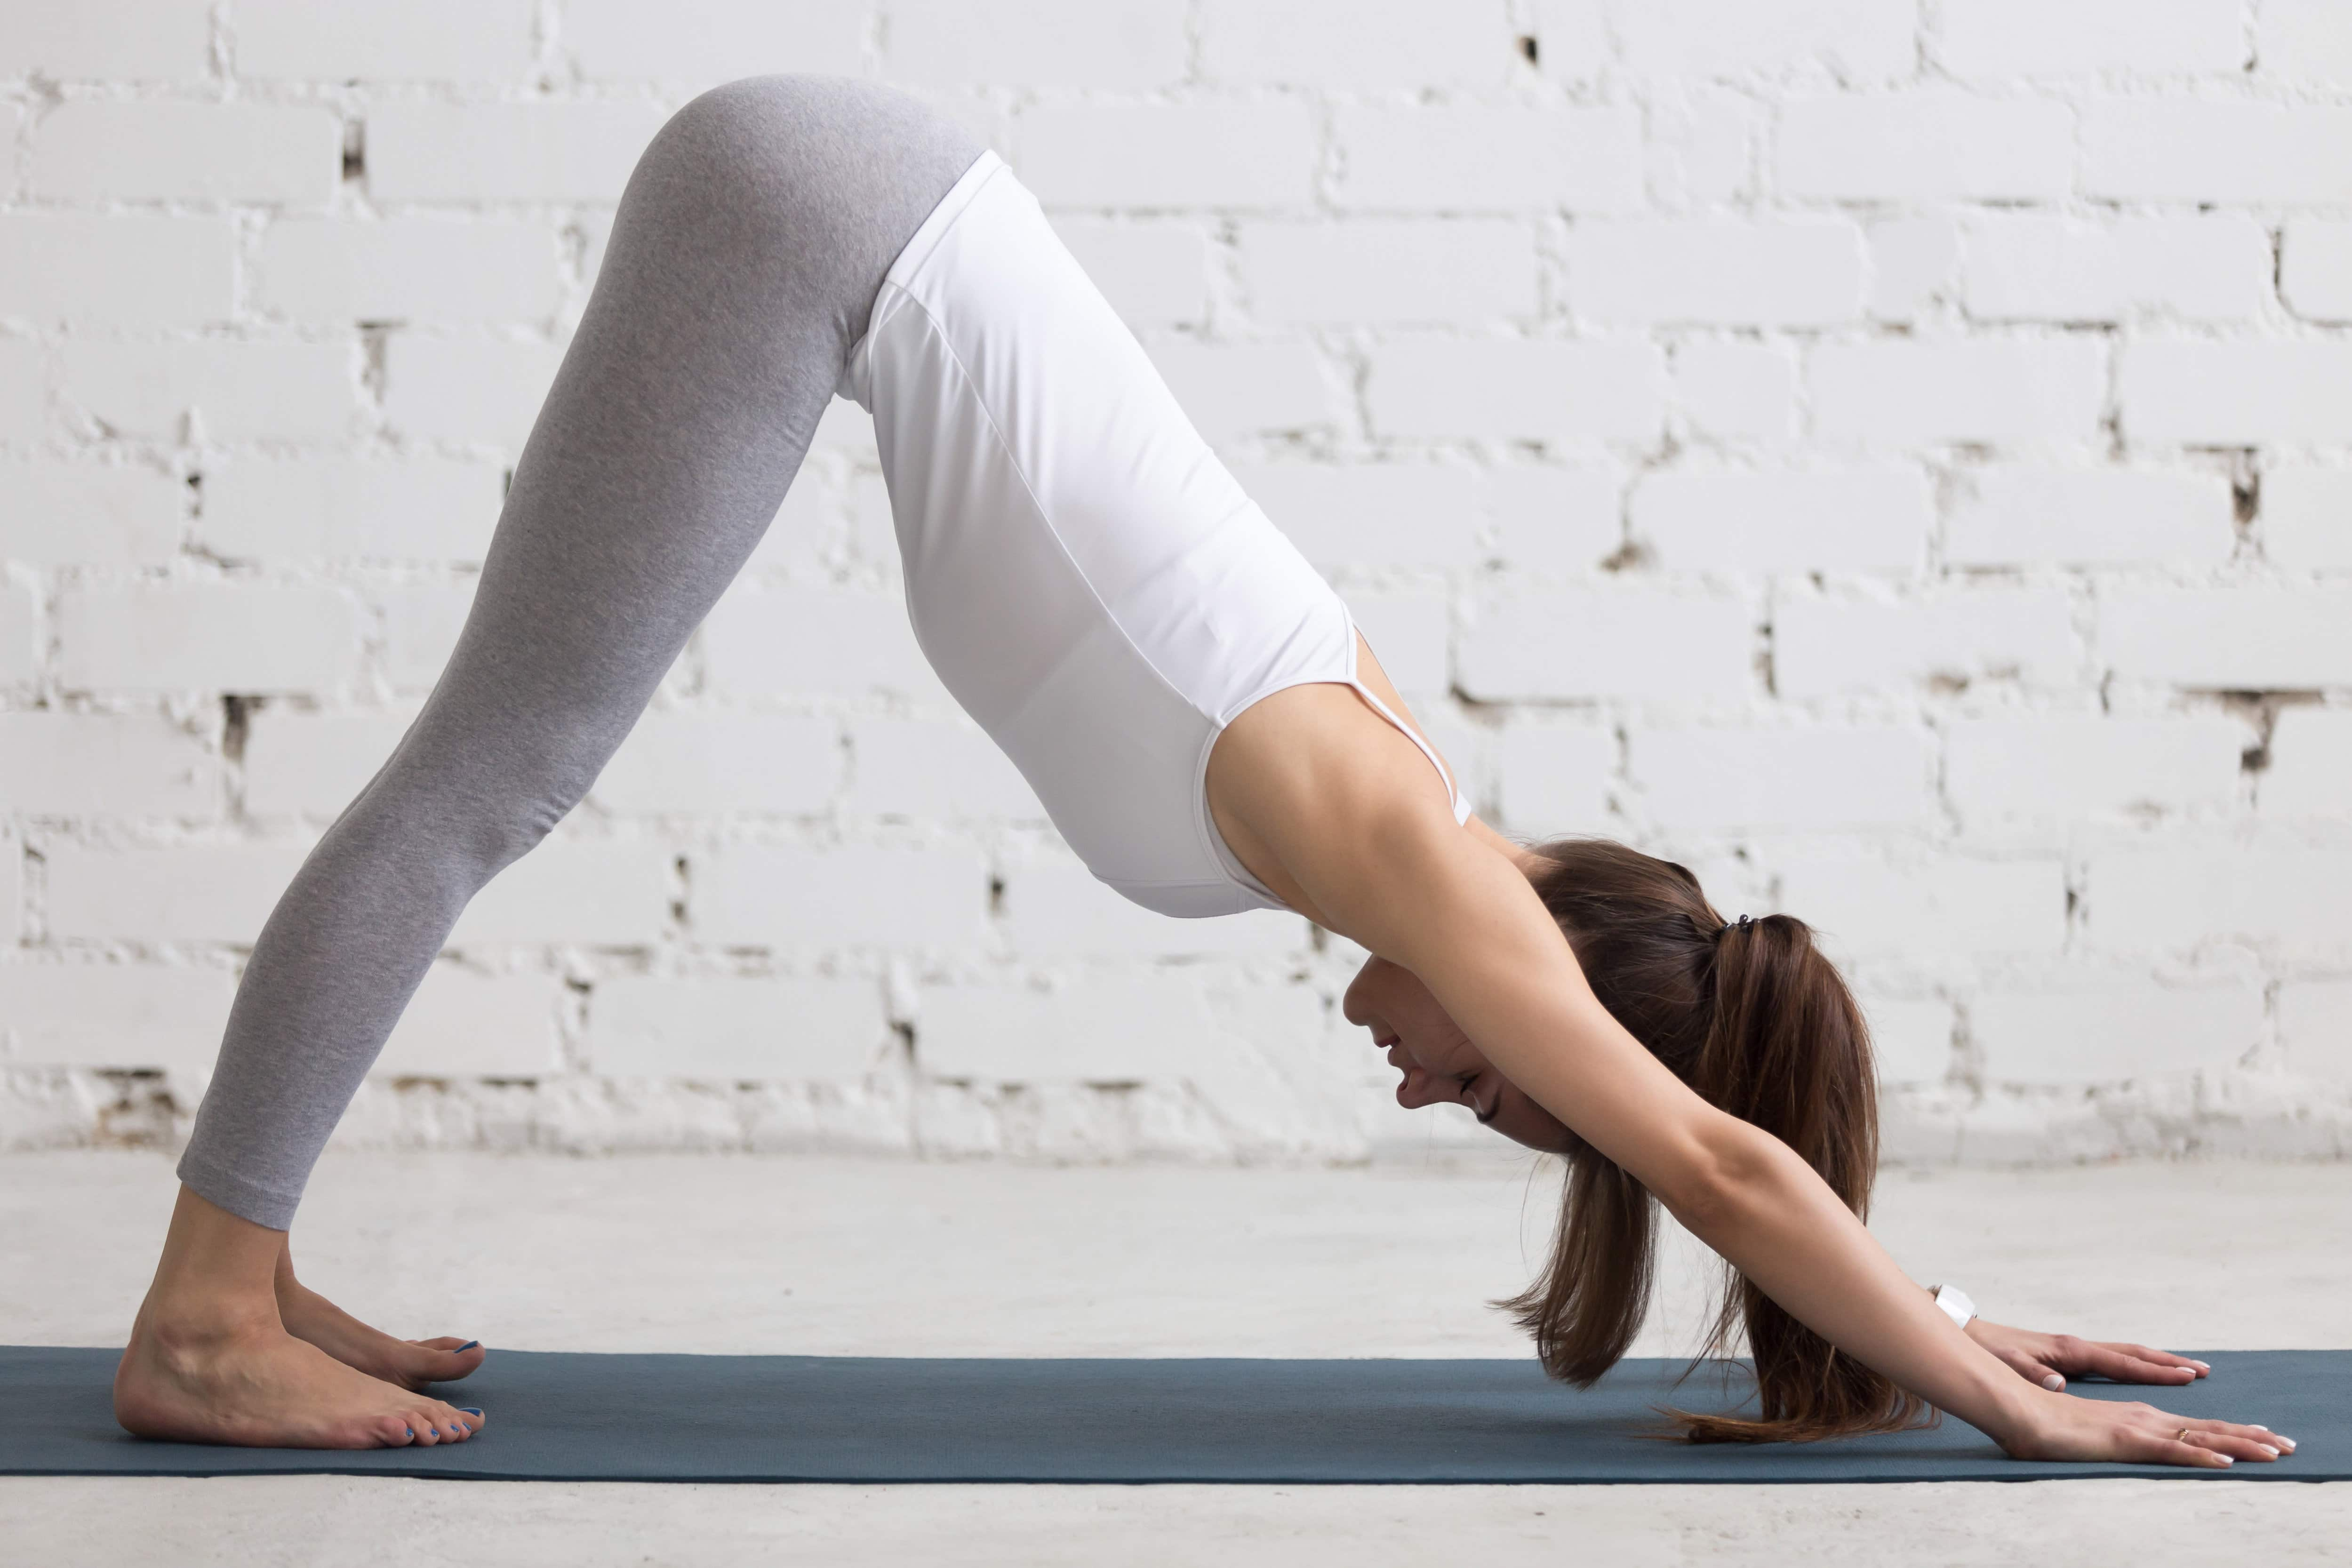 Parvatasana is the Eighth Posture of Sun Salutation. It is also called THE MOUNTAIN POSE.